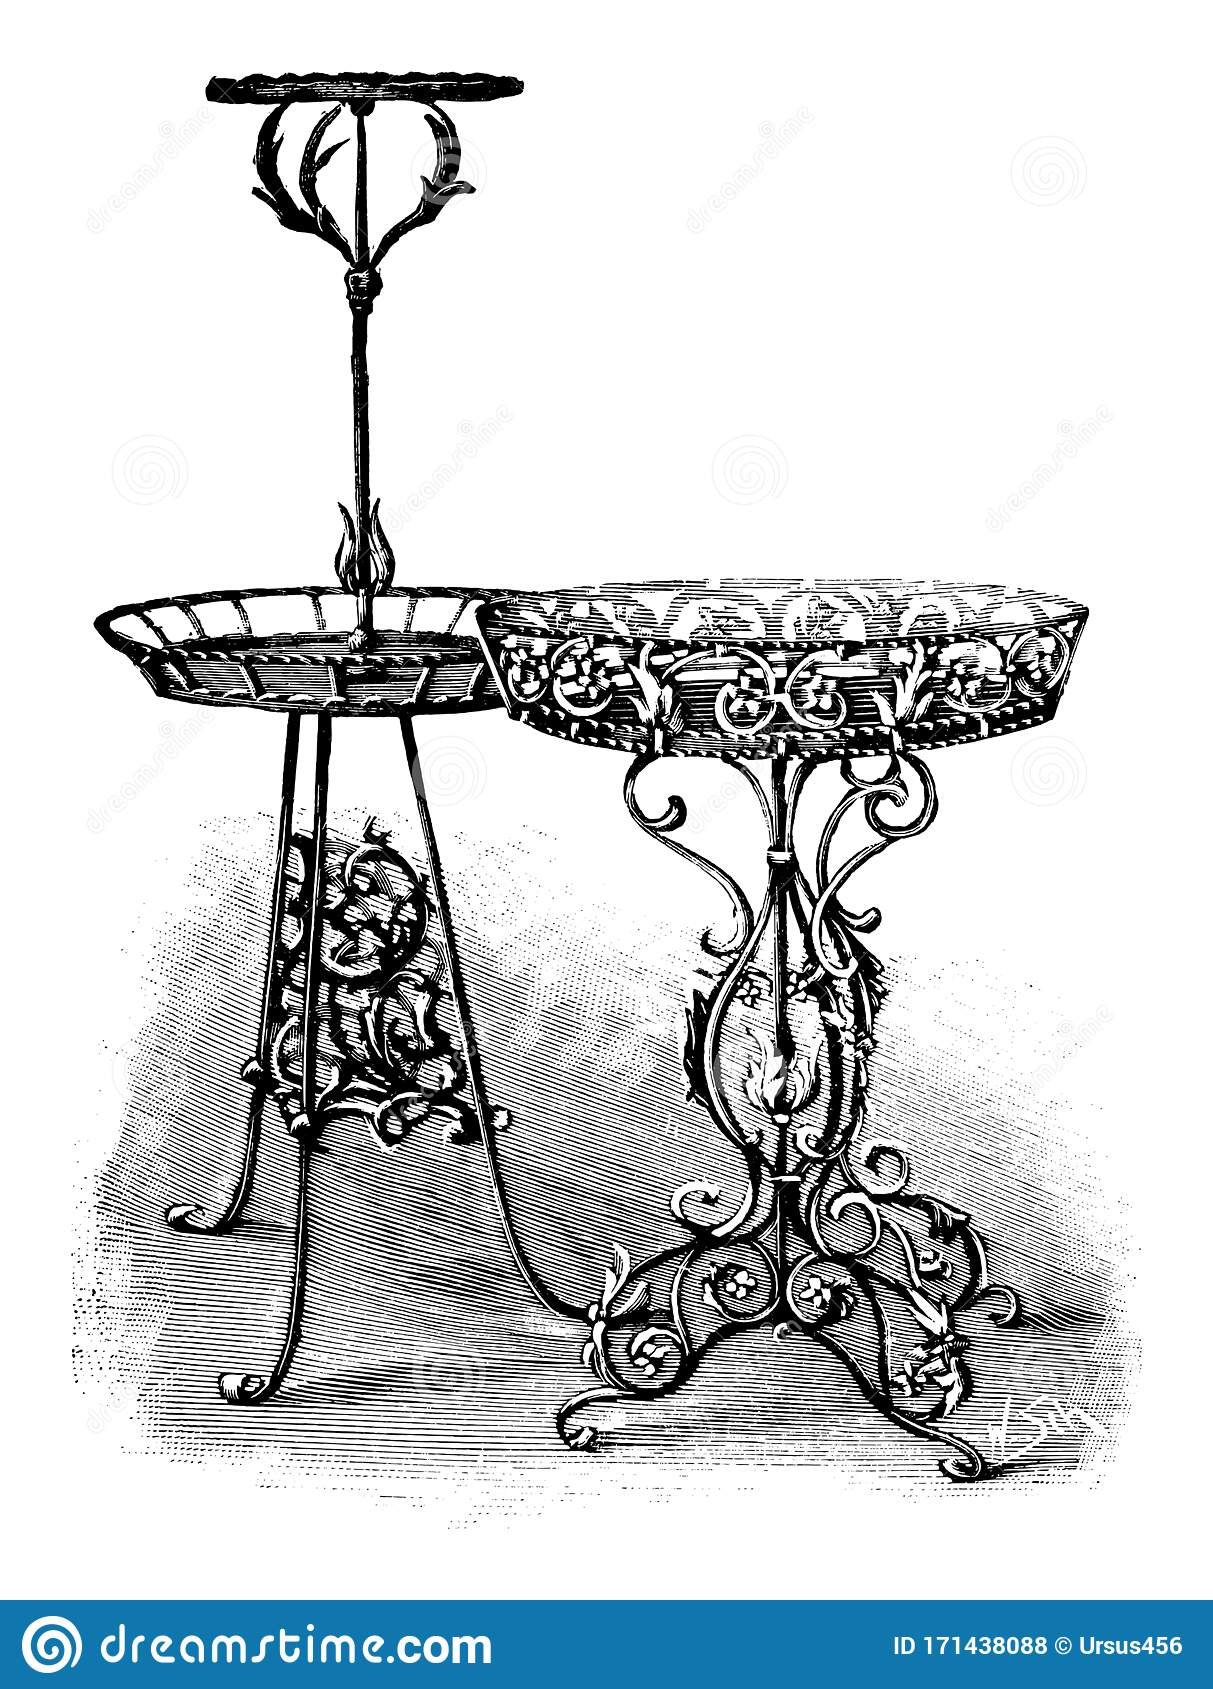 Furniture Antique Line Drawing Stock Illustrations 691 Furniture Antique Line Drawing Stock Illustrations Vectors Clipart Dreamstime